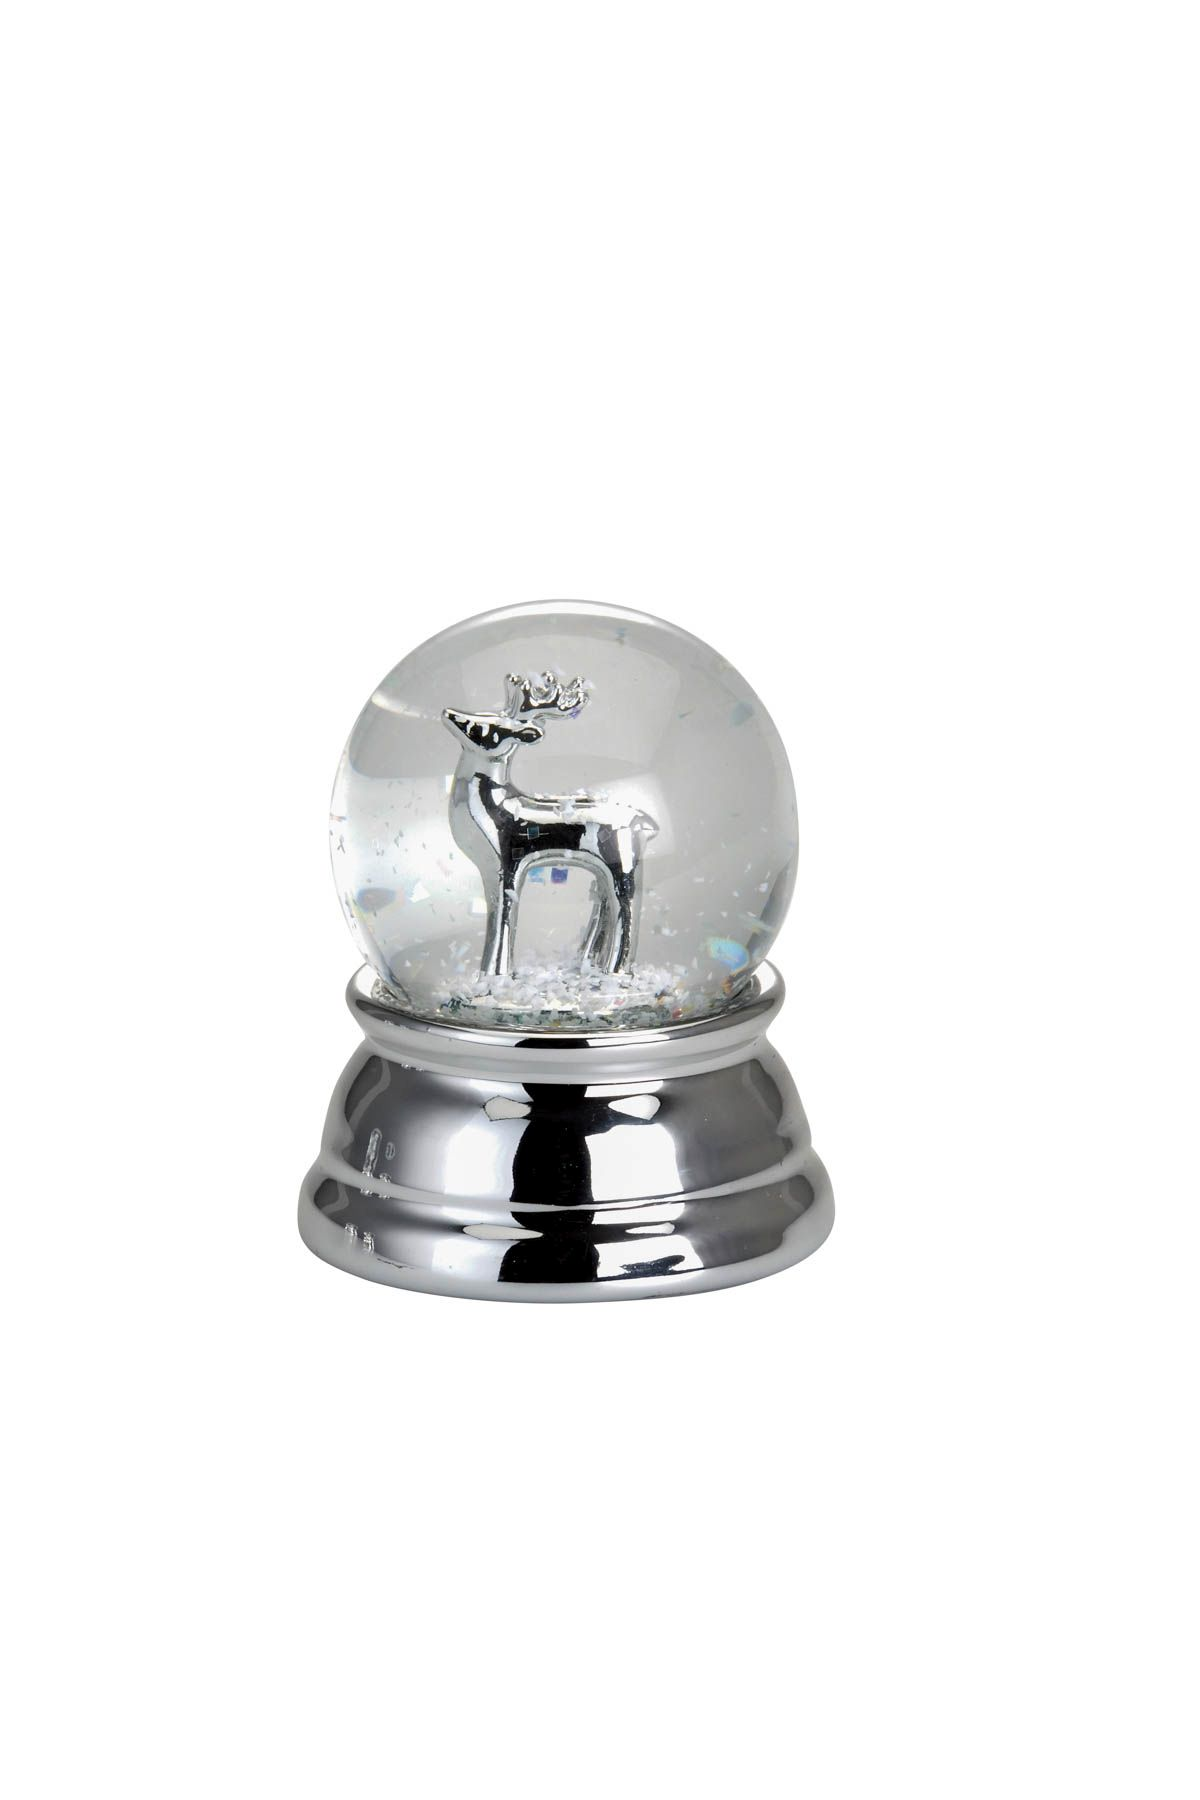 Waterglobe  Small, Reindeer Design